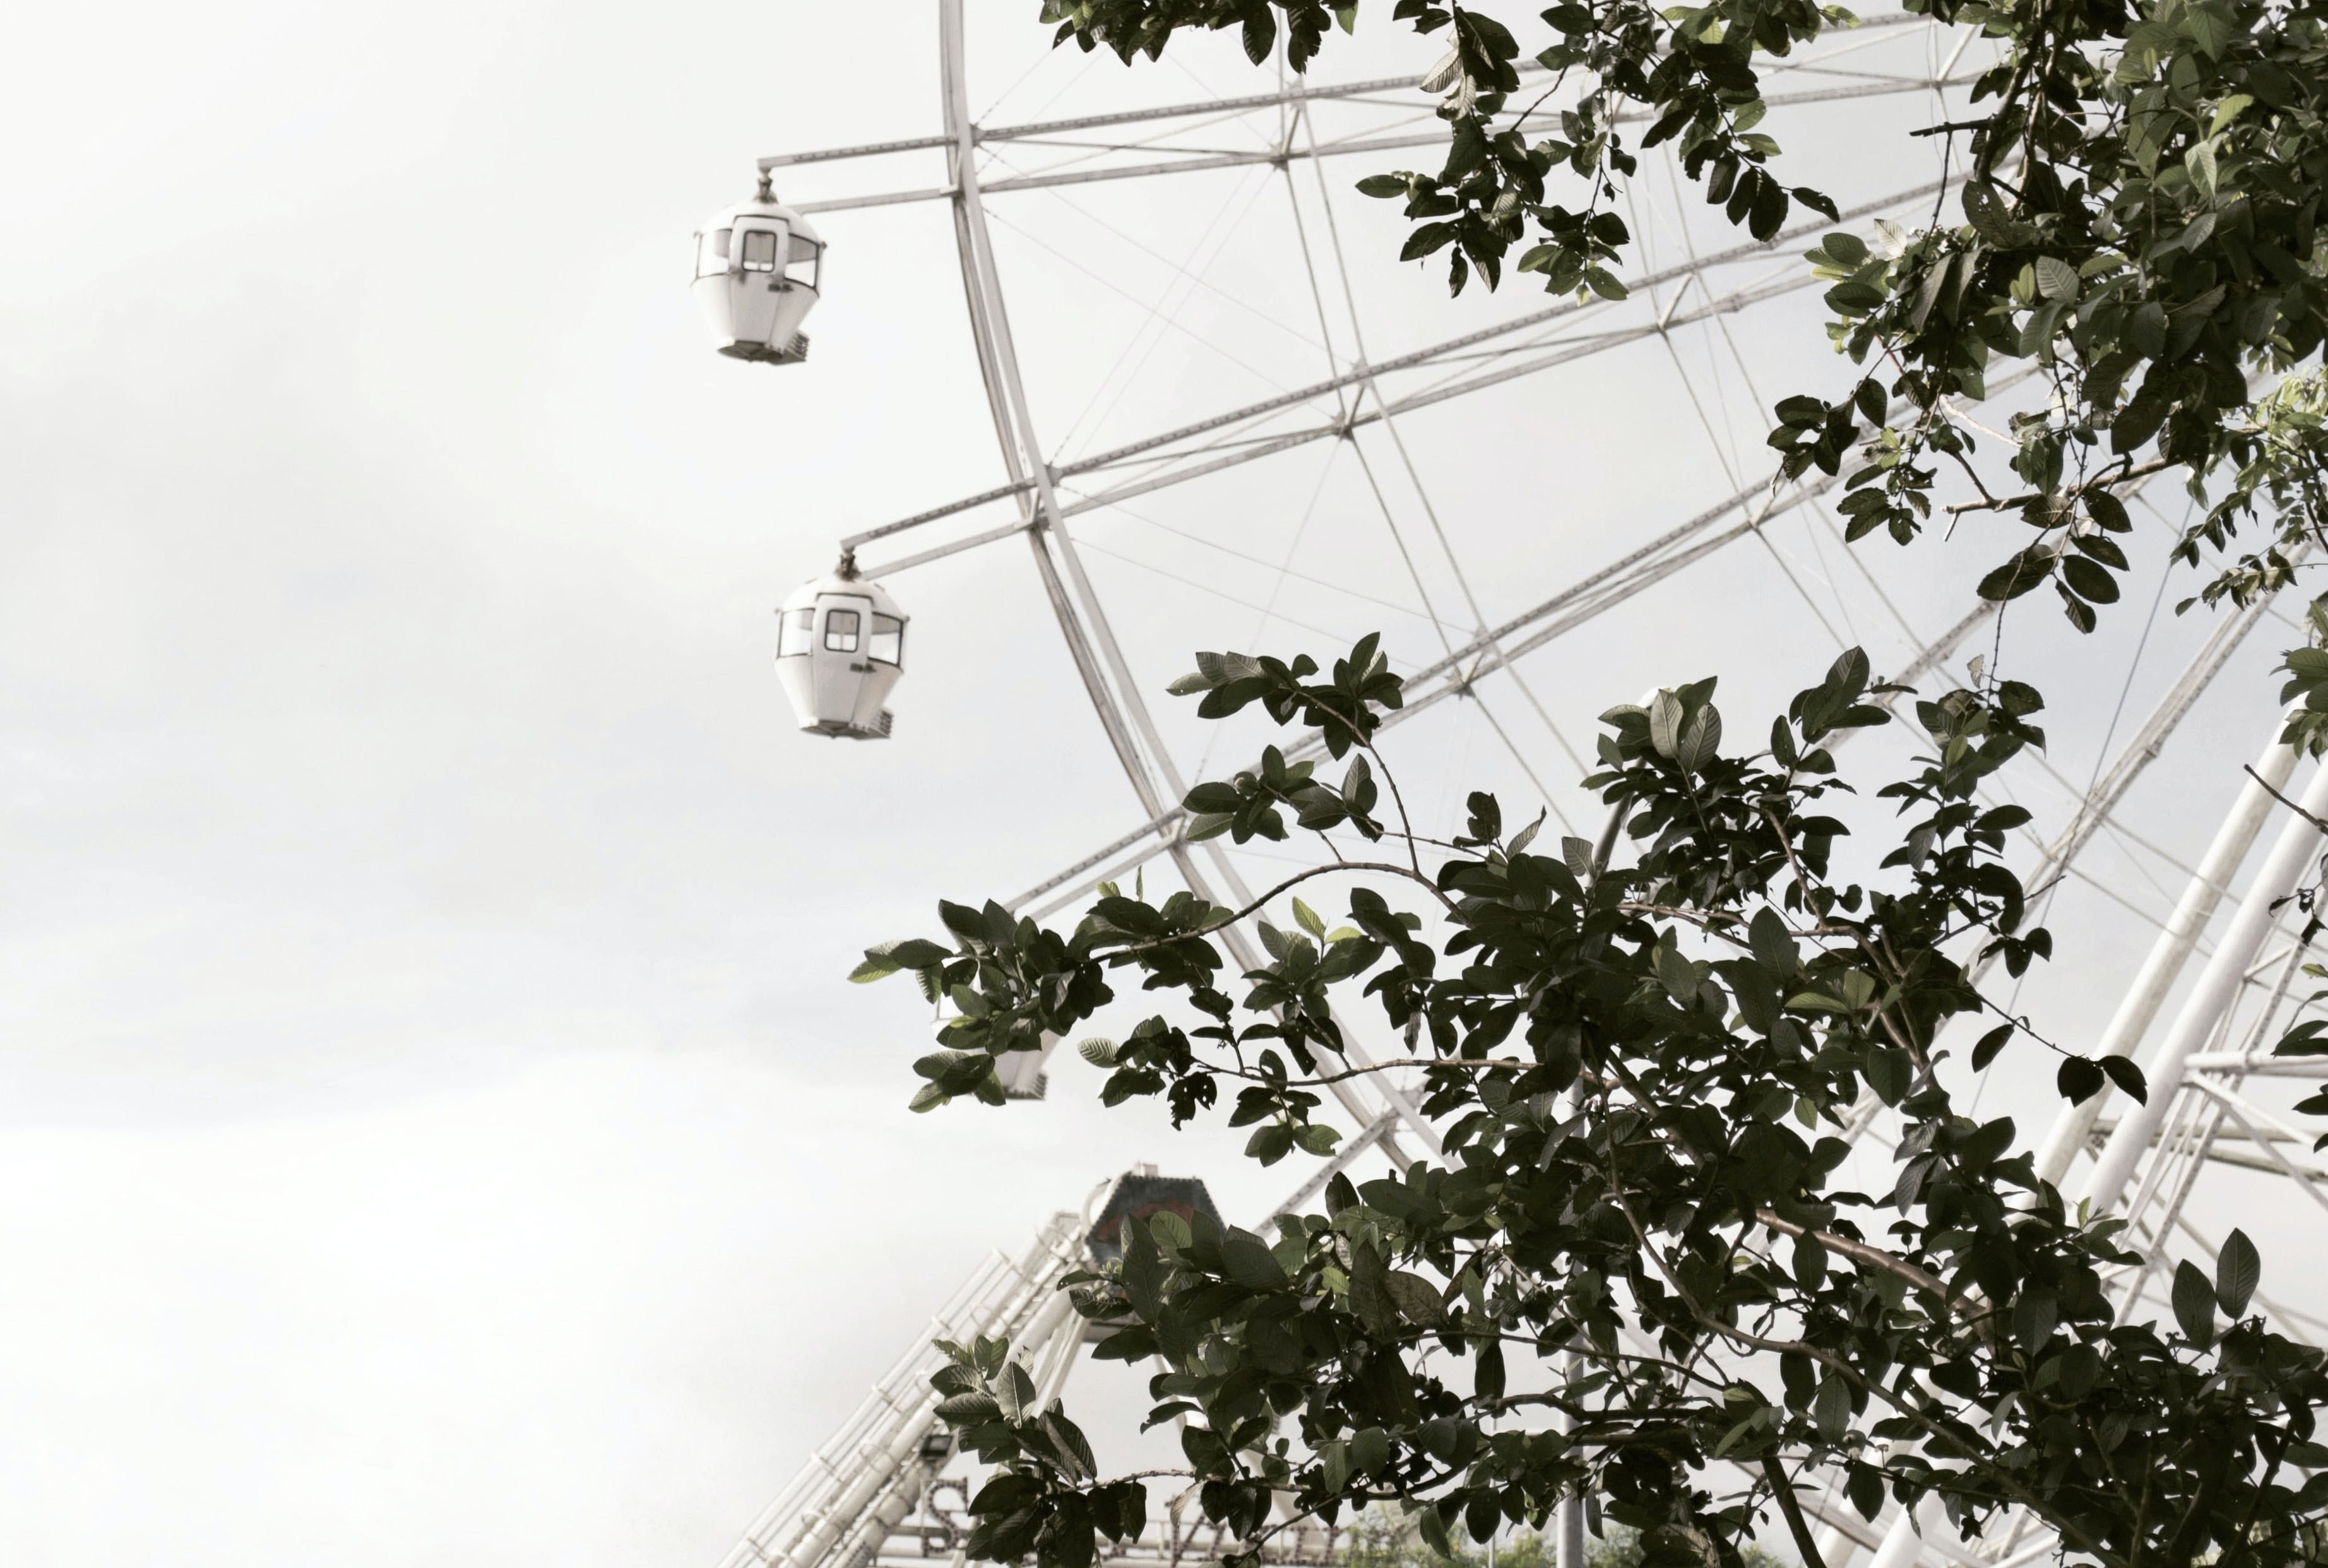 Ferris wheel can be seen through green leafed tree